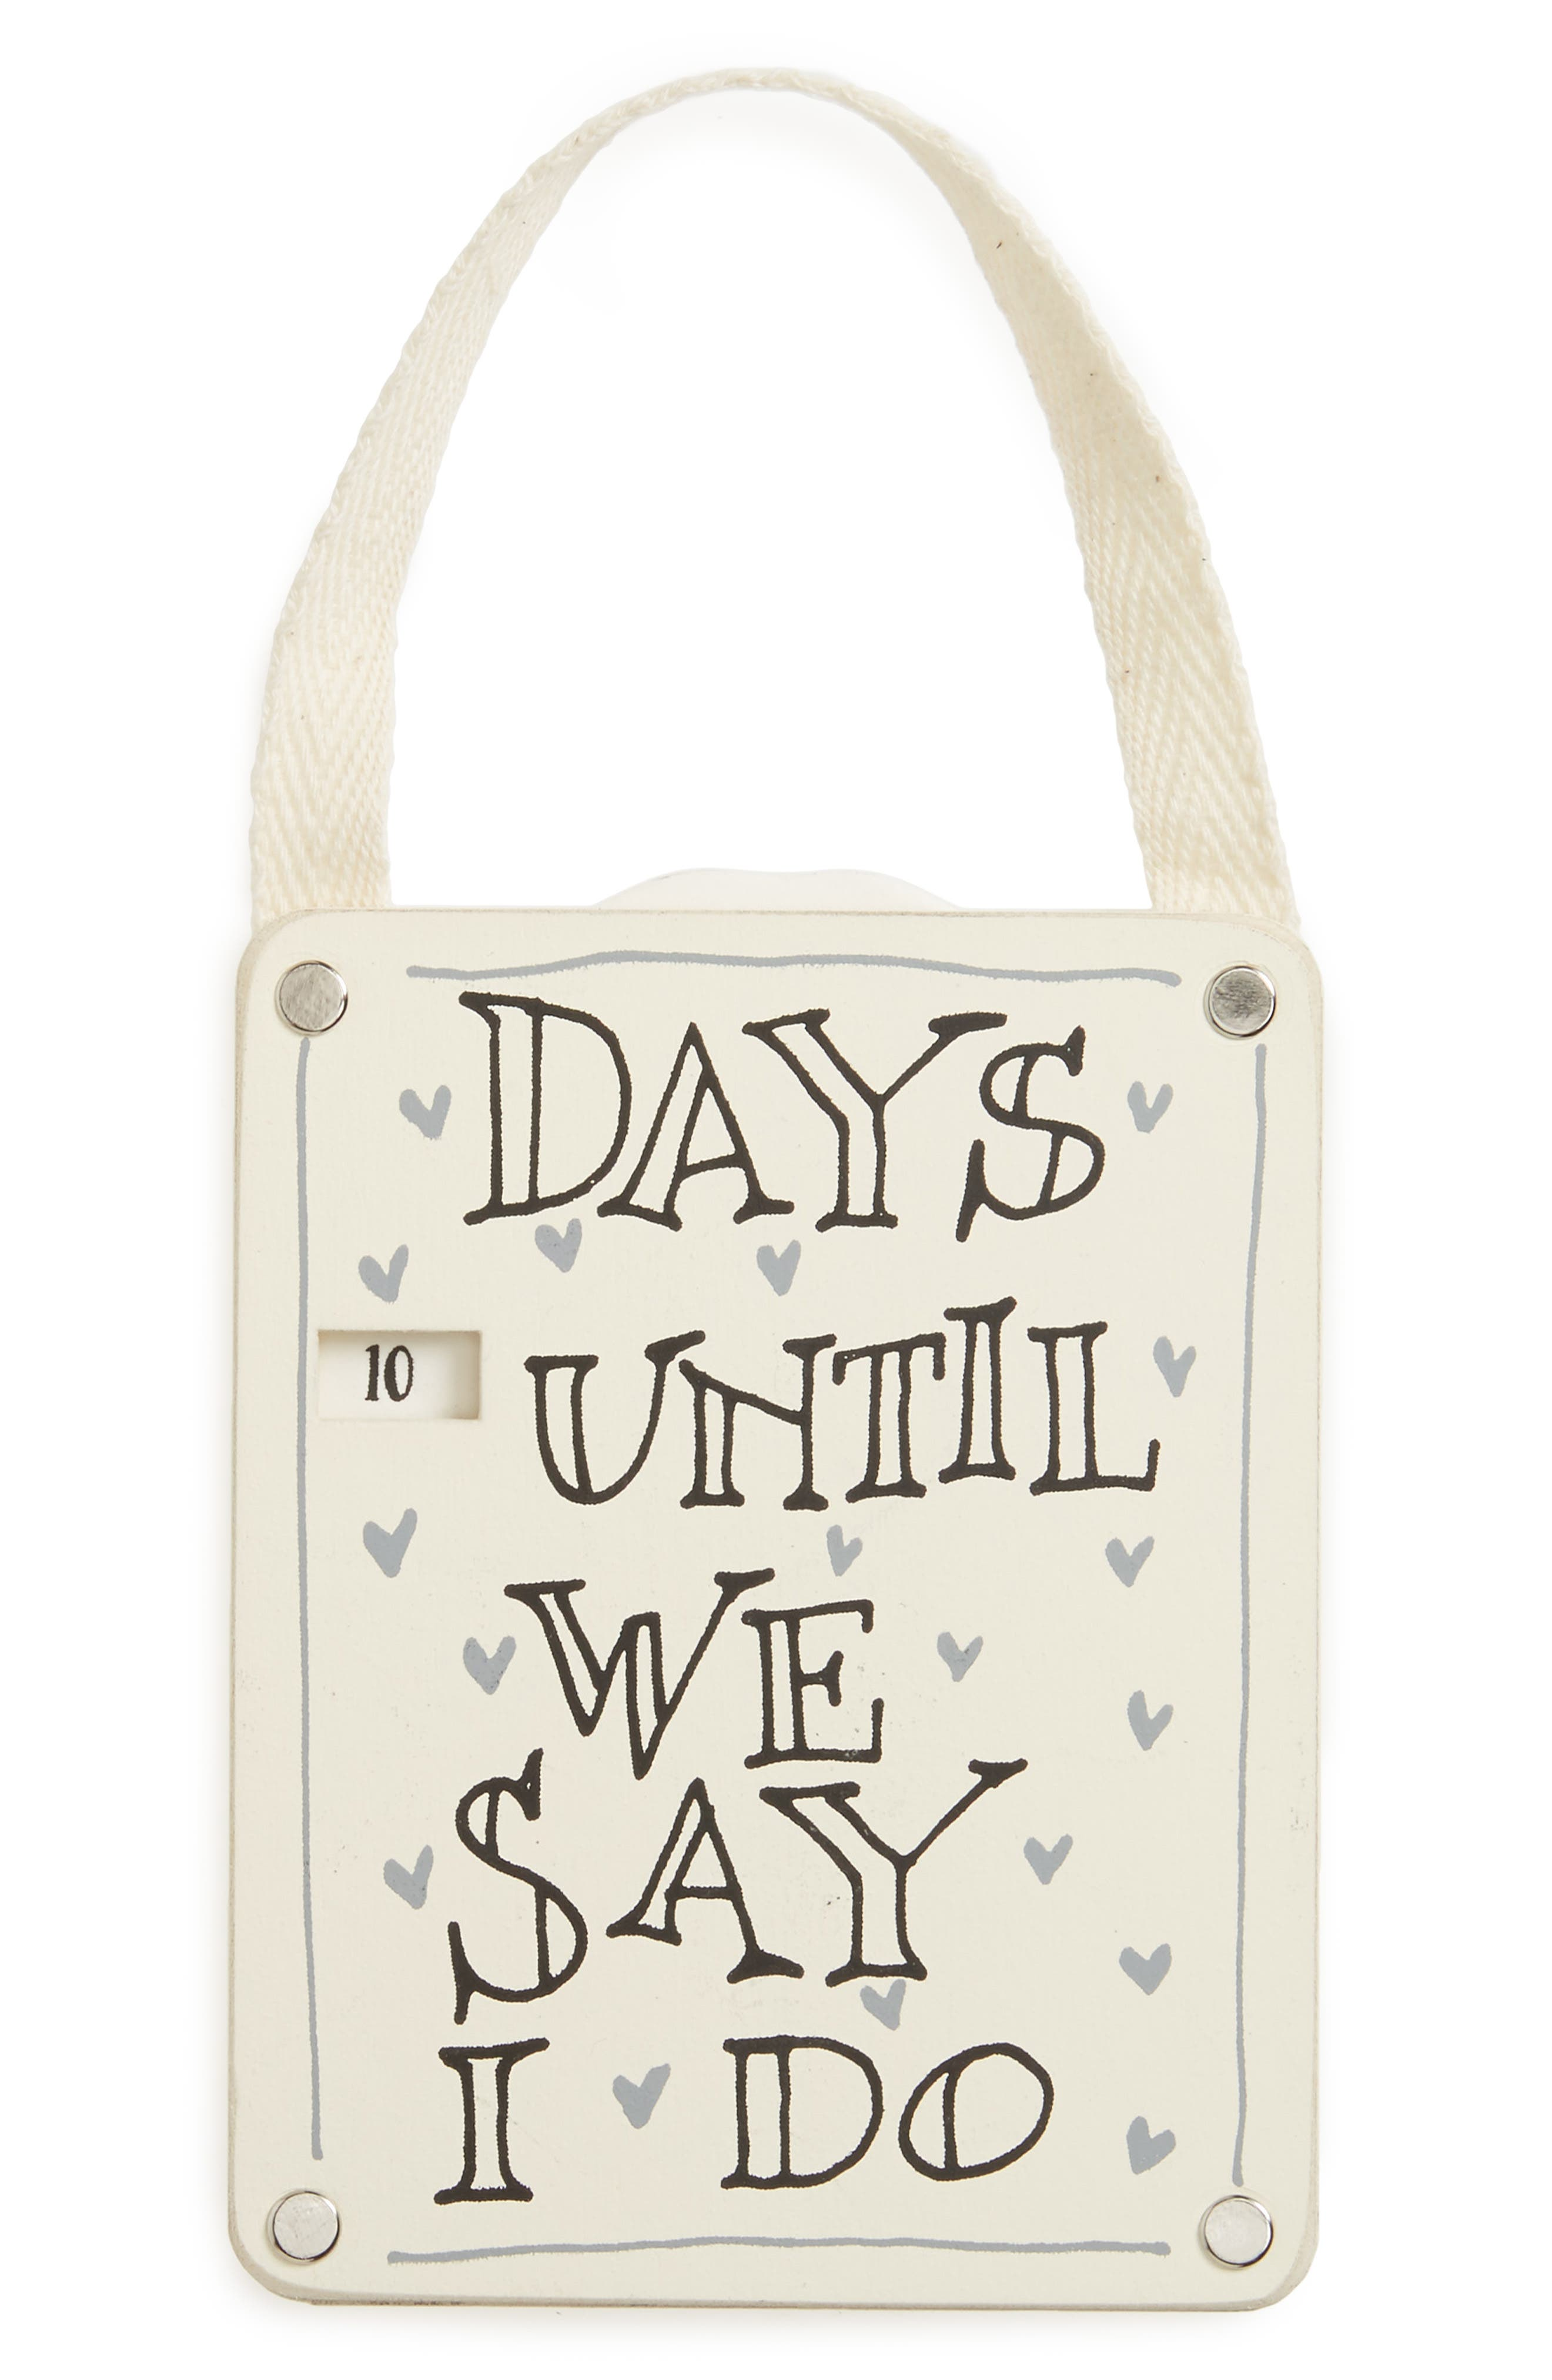 Countdown Until We Say I Do Sign,                         Main,                         color, 900